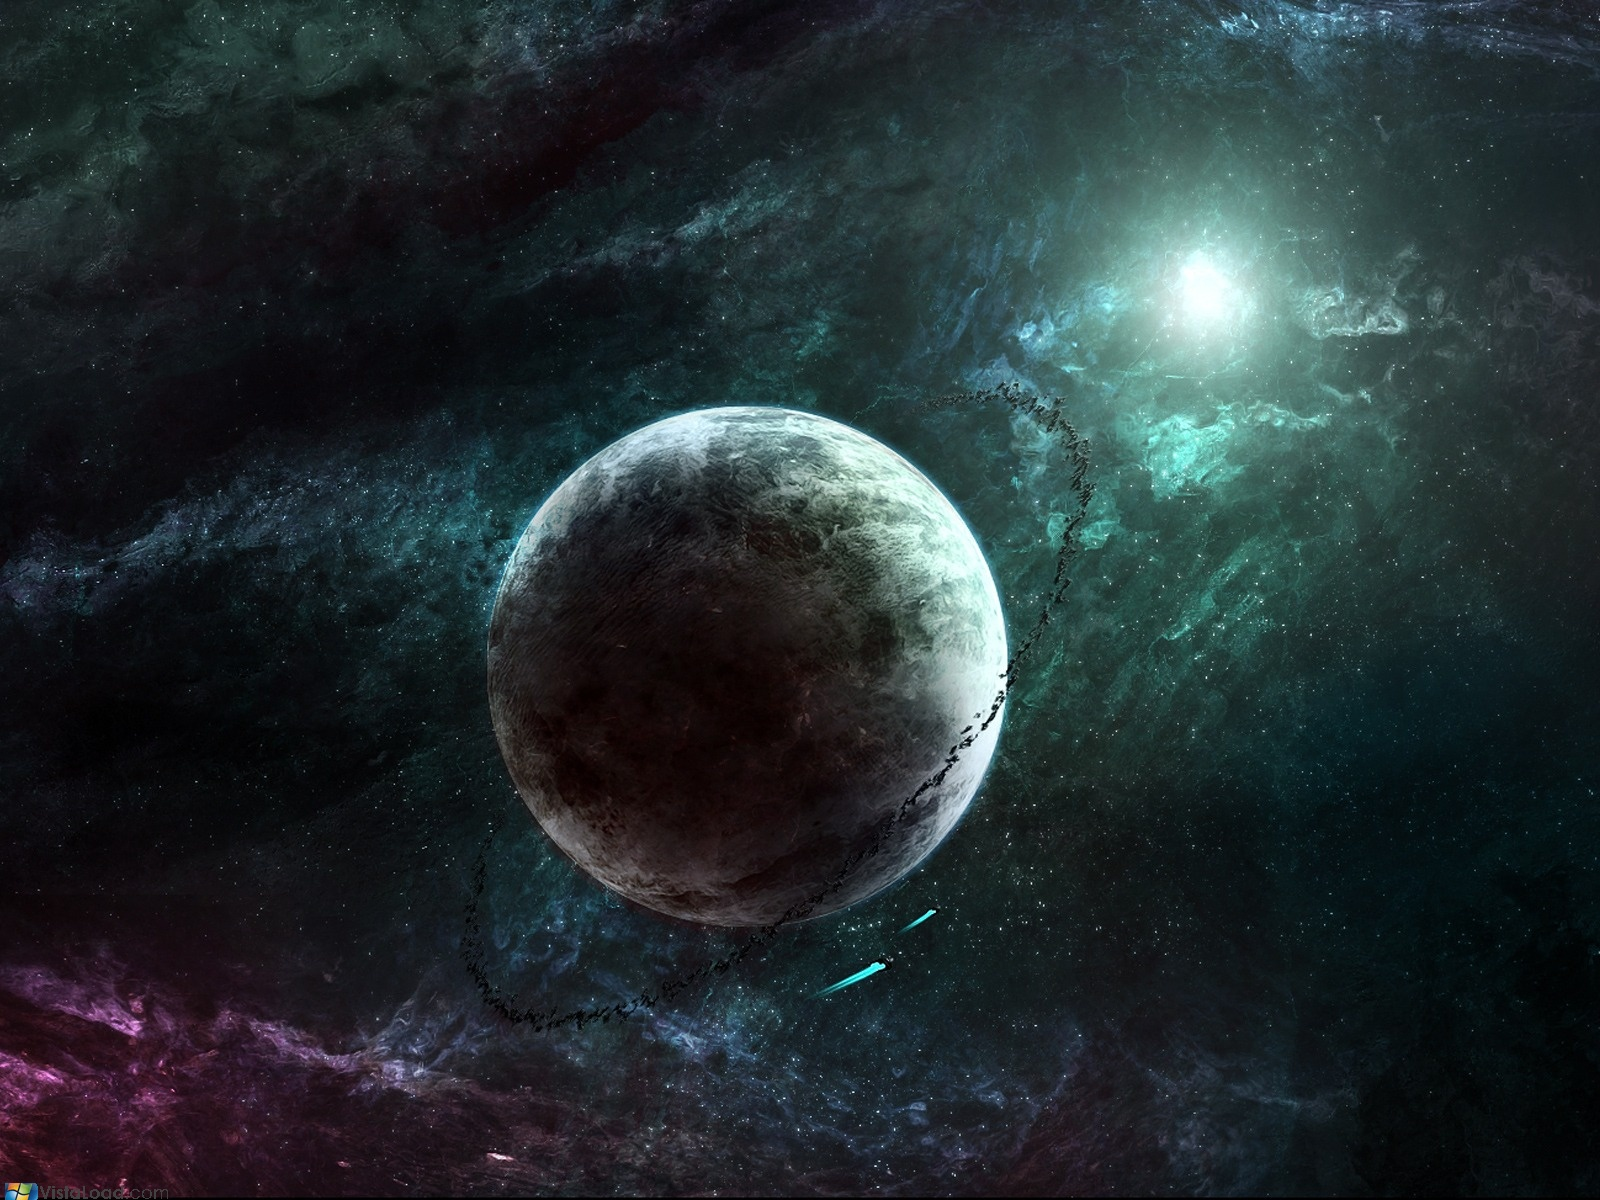 outer space planets skyscapes - photo #10